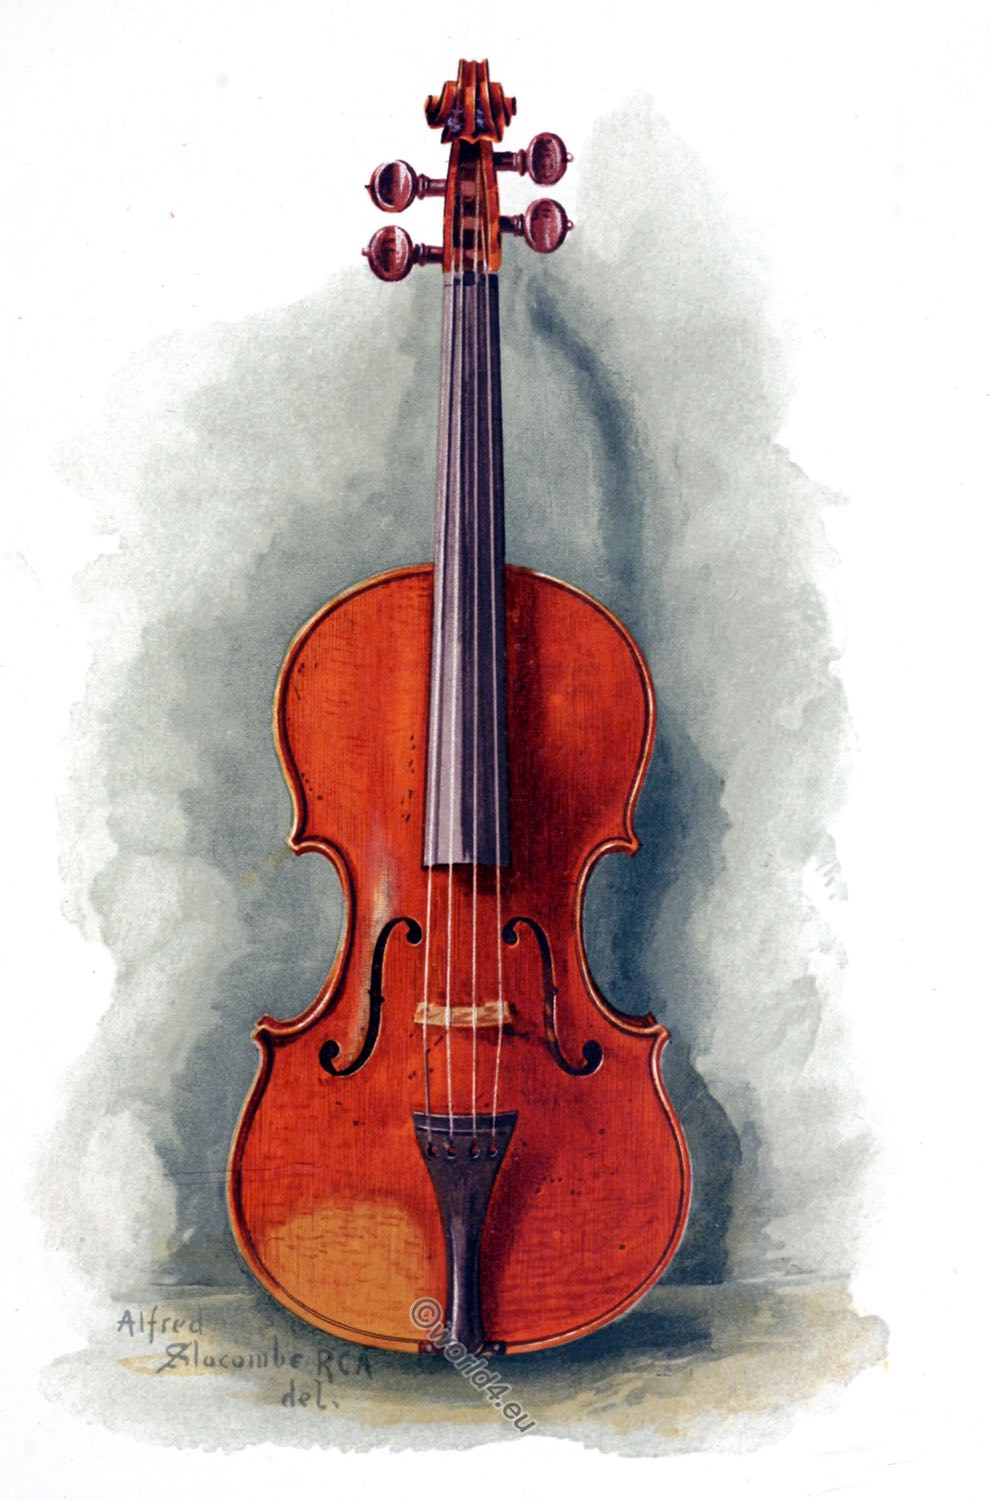 Tuscan, Stradivari, Violin, Instrument, Baroque, craft,